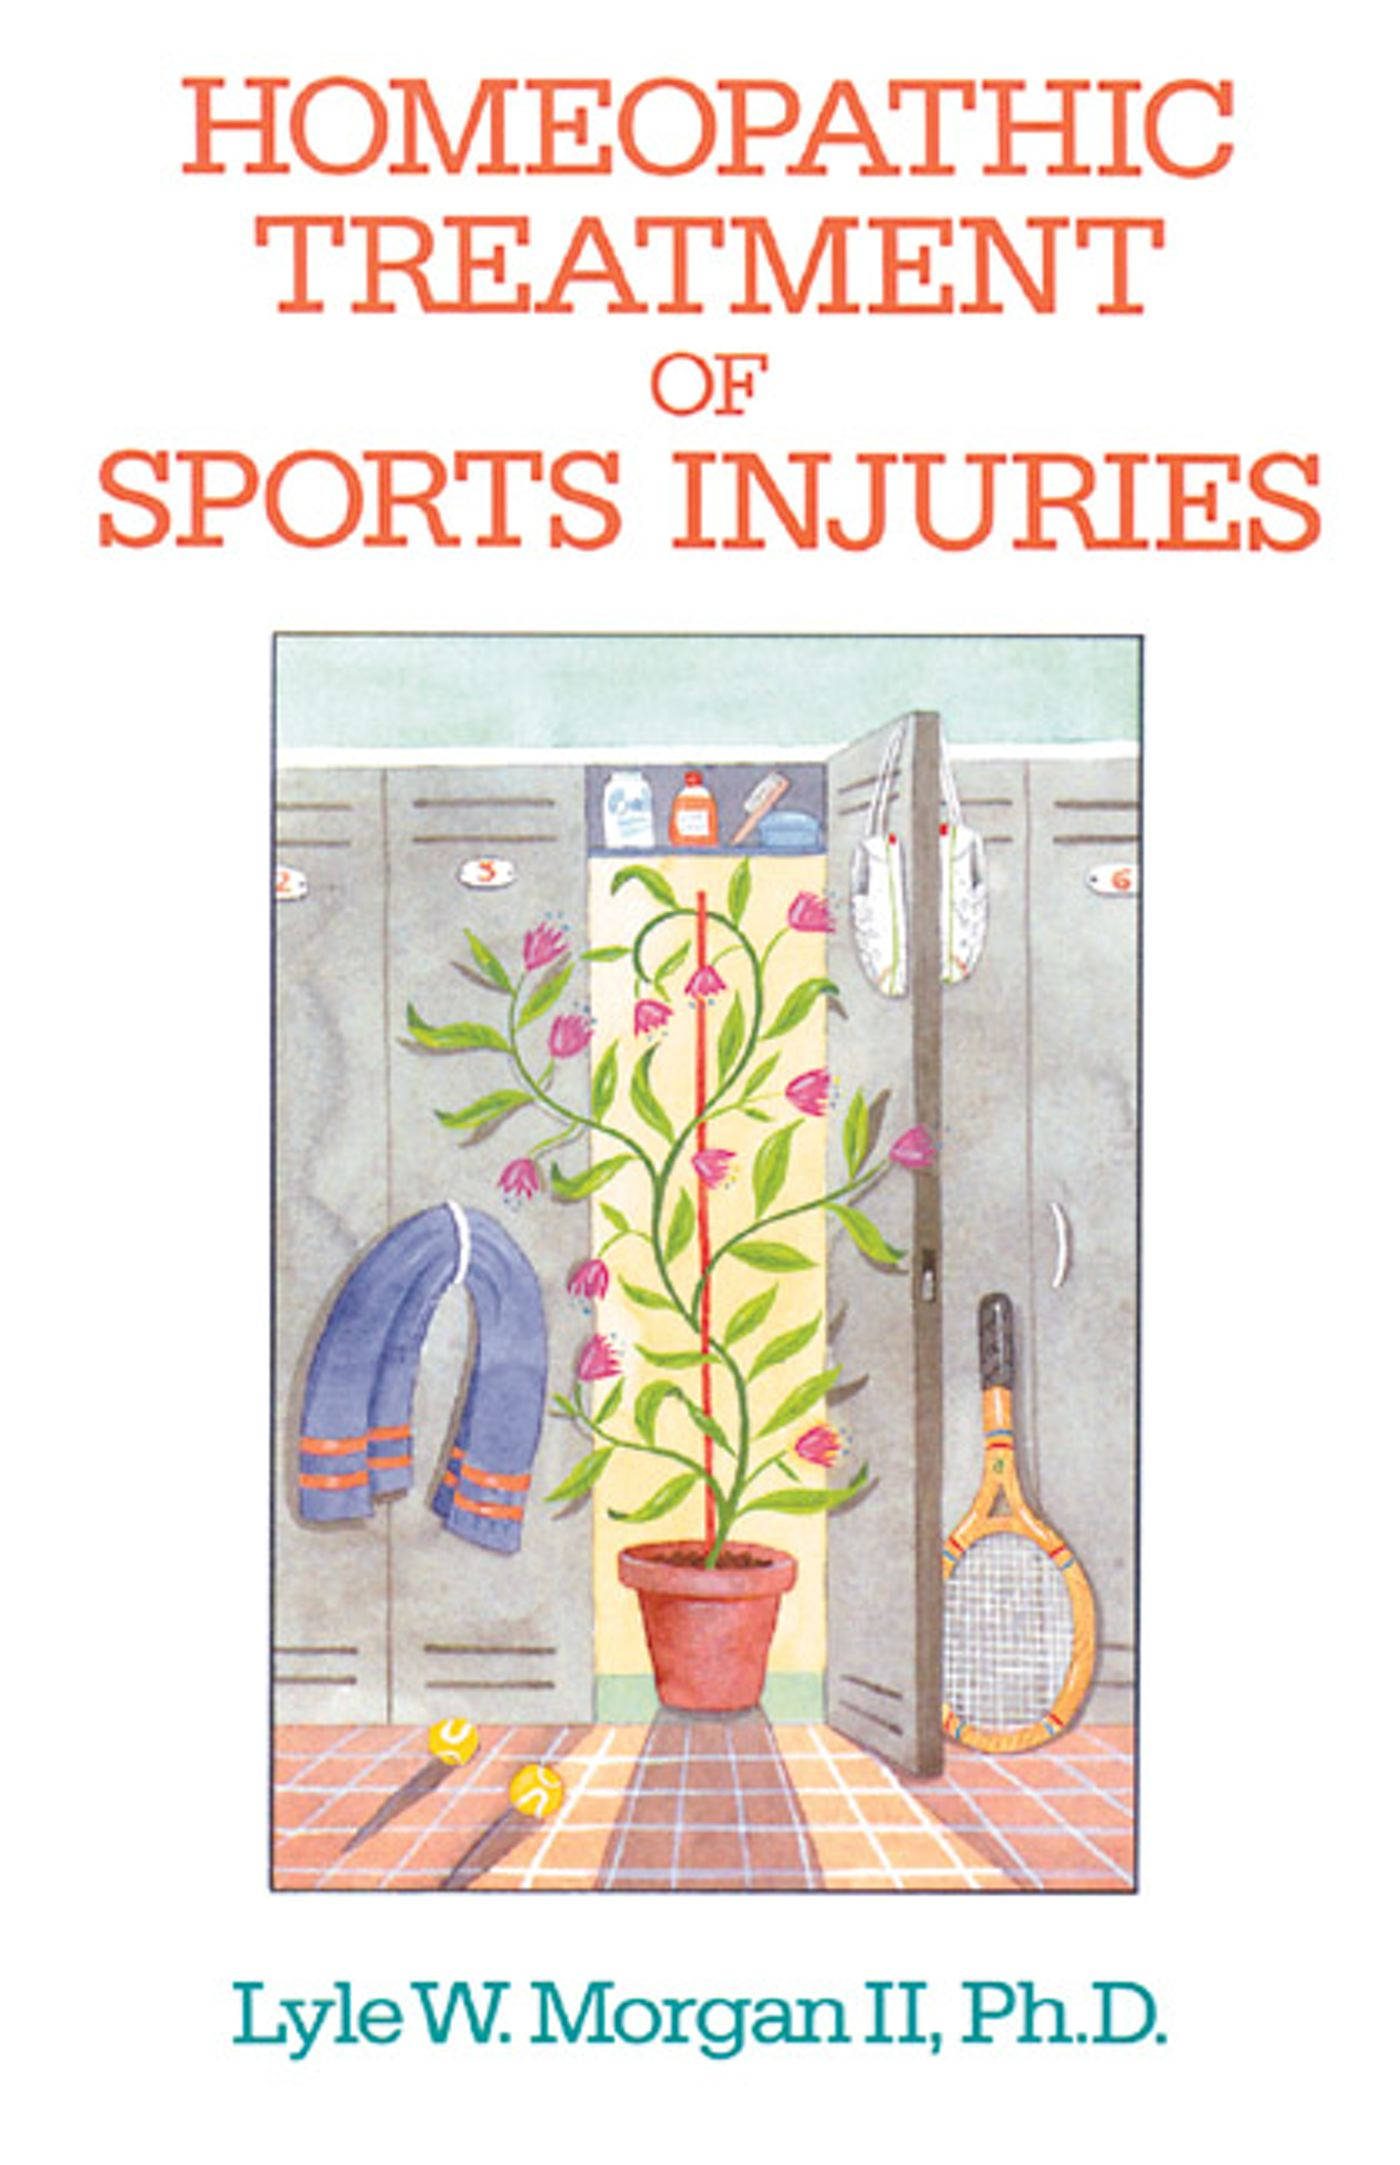 Homeopathic-treatment-of-sports-injuries-9780892812271_hr